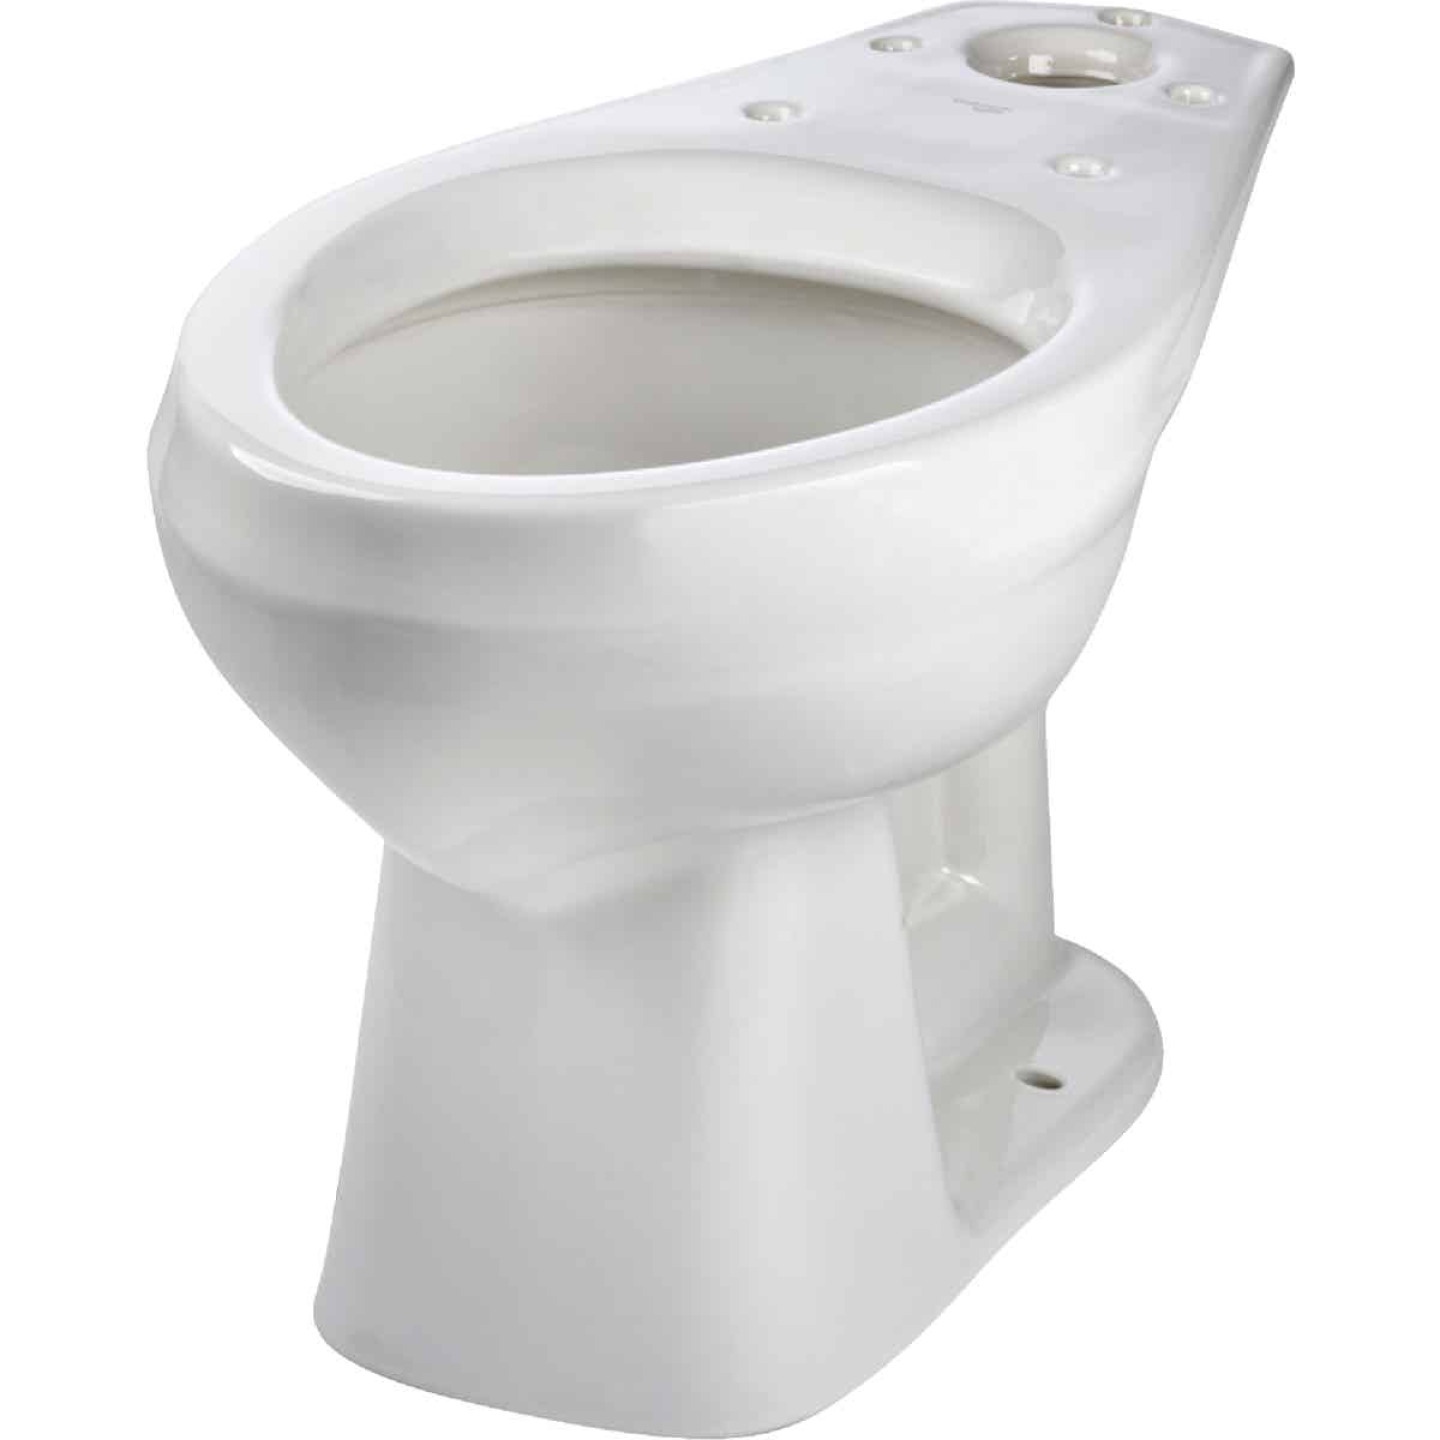 Mansfield Alto Smartheight White Elongated 16-7/8 In. ADA Toilet Bowl Image 2